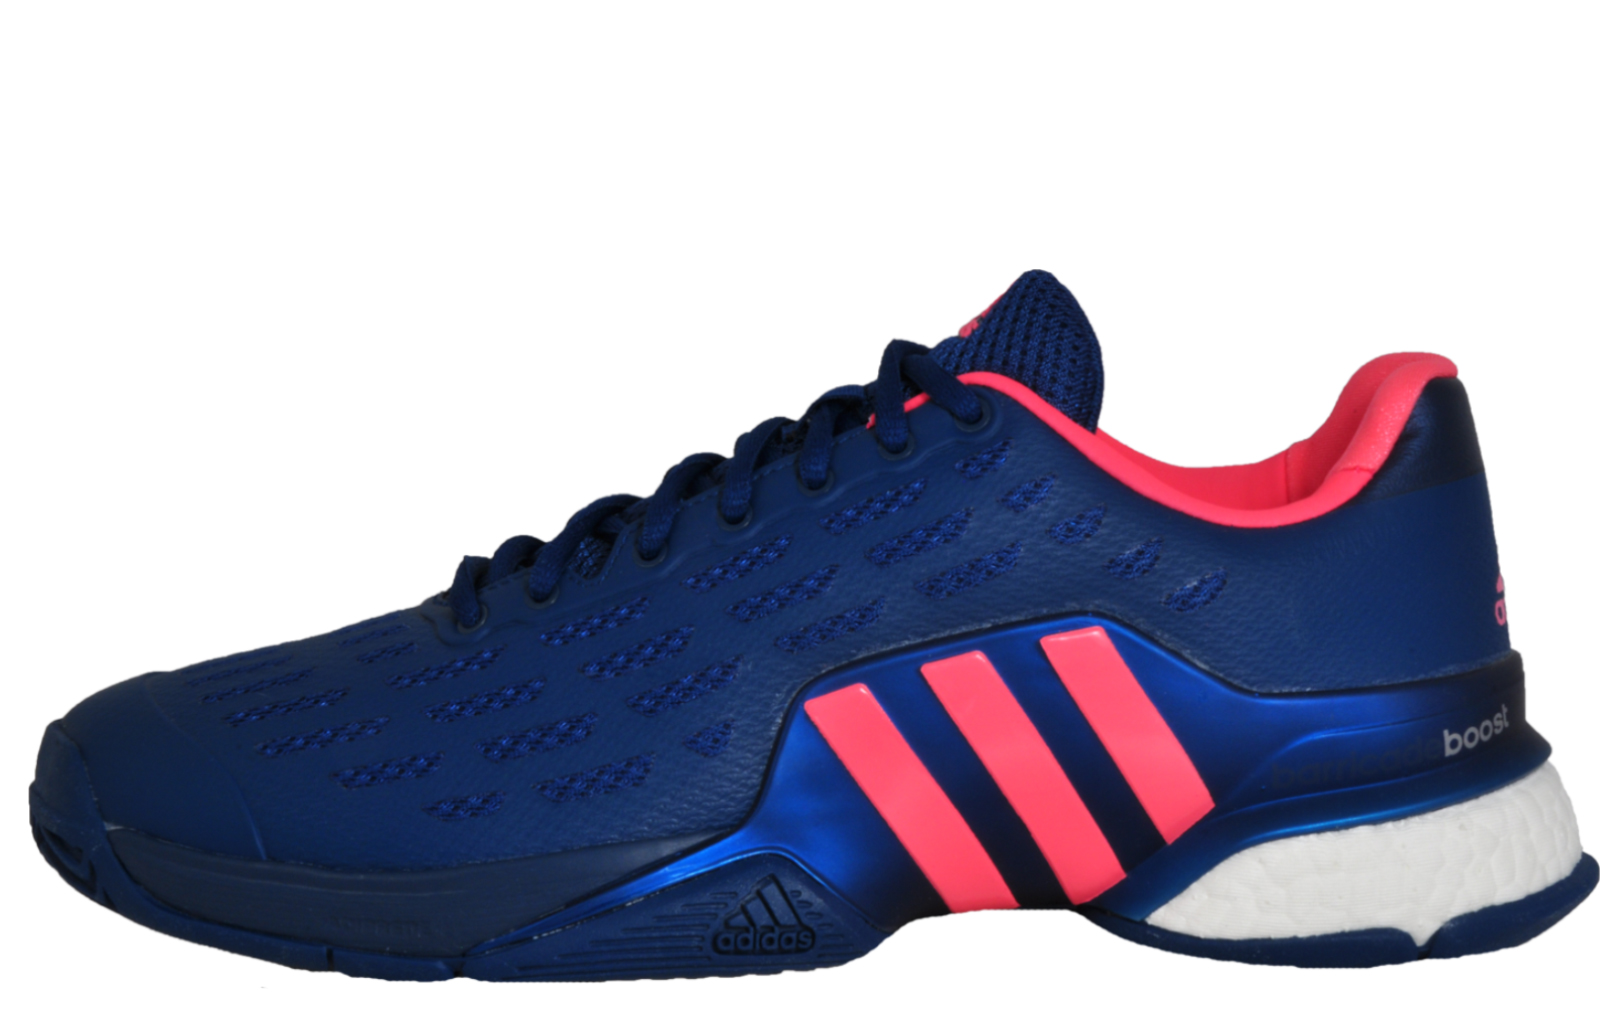 57f2e79950827 cheap adidas ultra boost running shoes black 2016 038e2 76ffd  official  adidas barricade 2016 boost mens tennis shoes court fitness gym trainers  blue 486ca ...